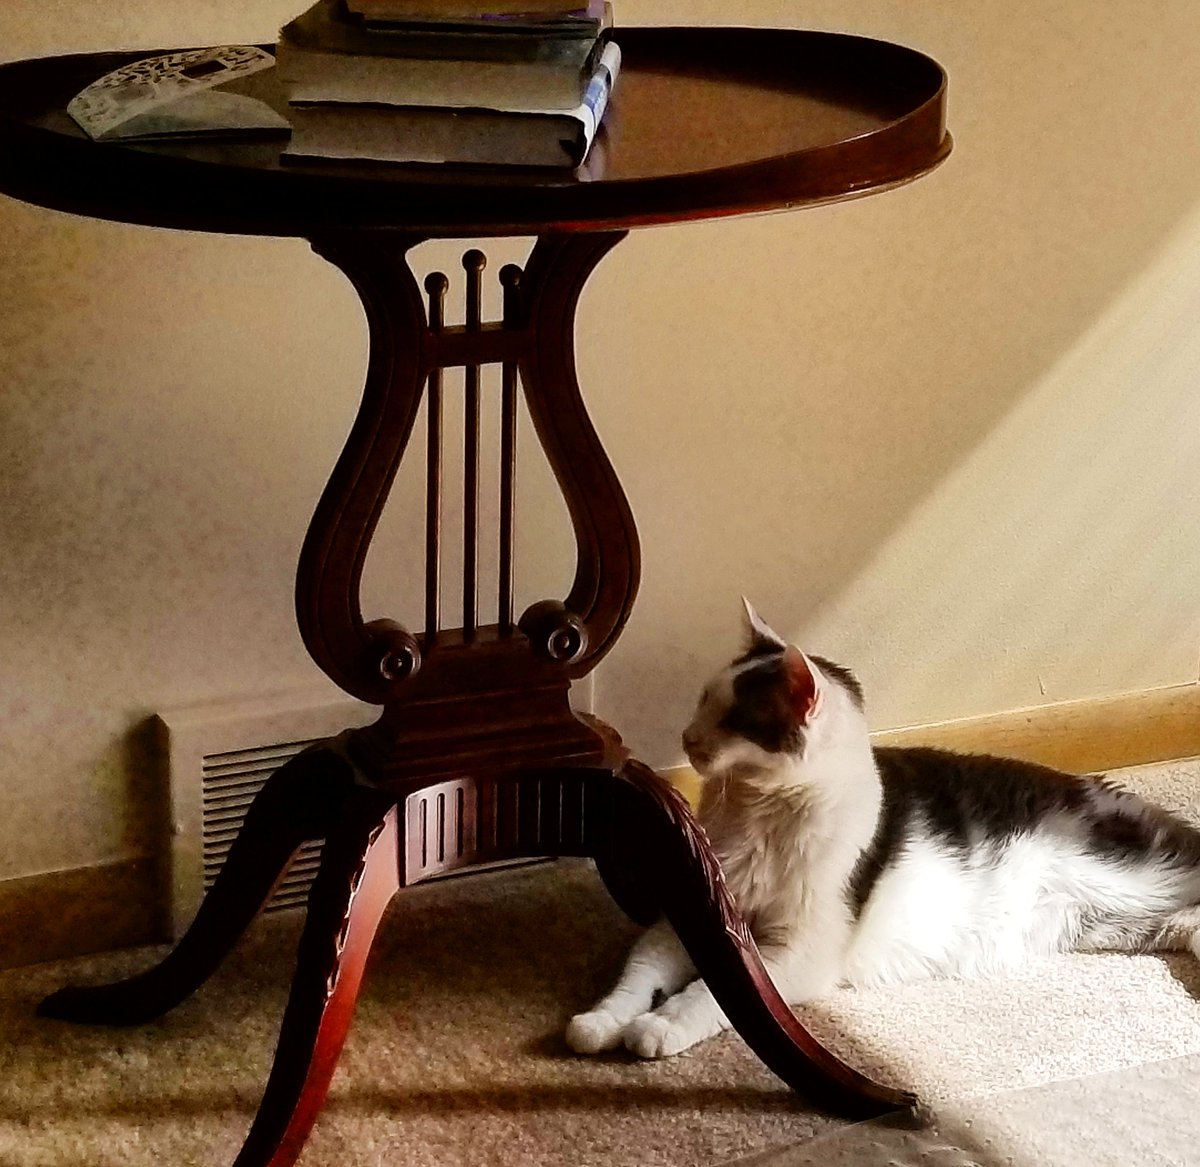 Enjoying the sunshine. . #pets #kitty #Cat #HomeSweetHome #sunnyweather #antiques #table #awesome #FridayFeeling #Weekend #havingfun #books #realestateagent #Nice #Weather #beautifulday<br>http://pic.twitter.com/HhiYFRuSui